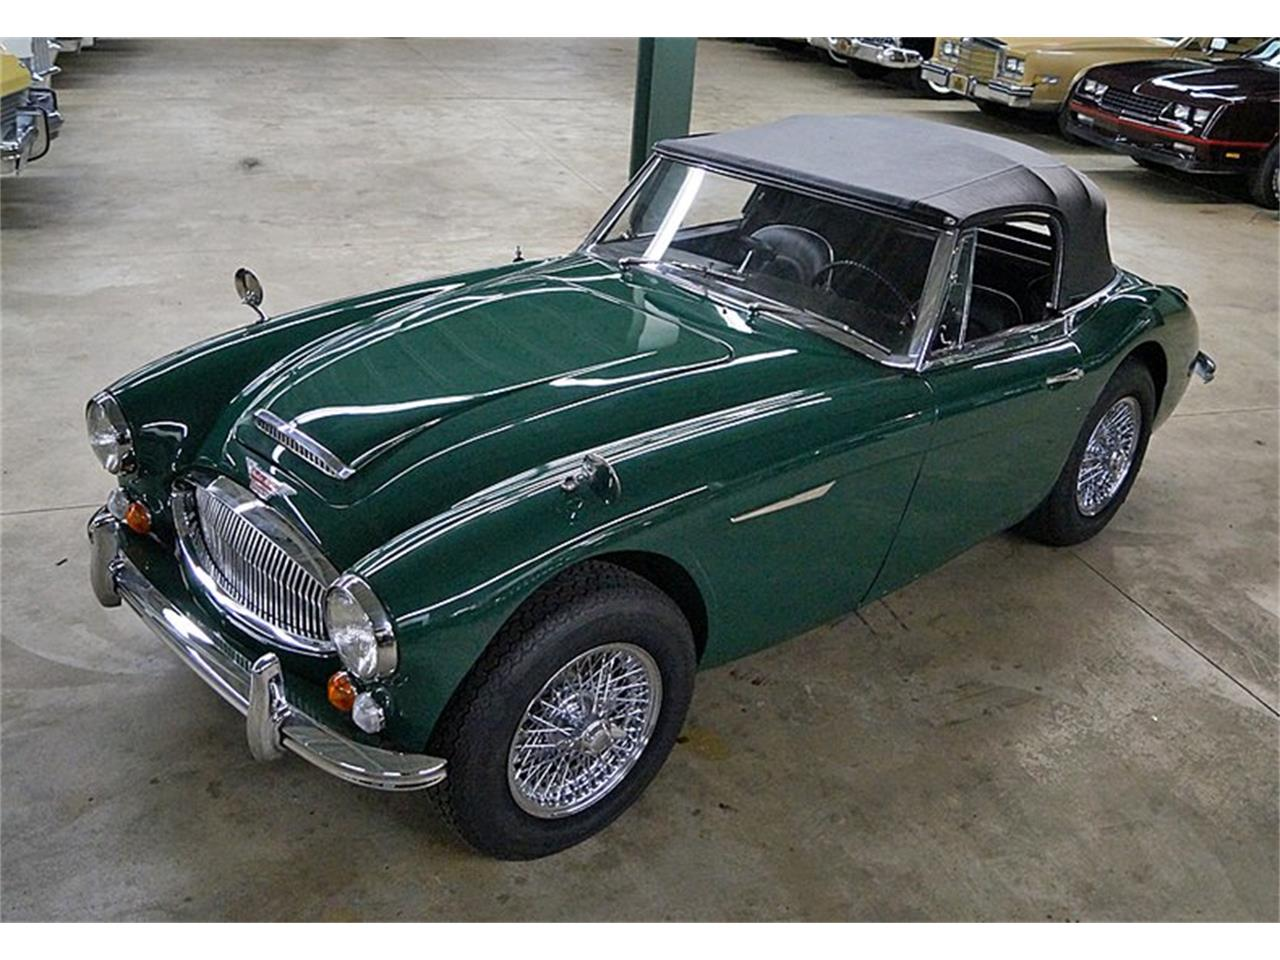 Large Picture of '67 Austin-Healey 3000 Mark III BJ8 Auction Vehicle Offered by Saratoga Auto Auction - R16P